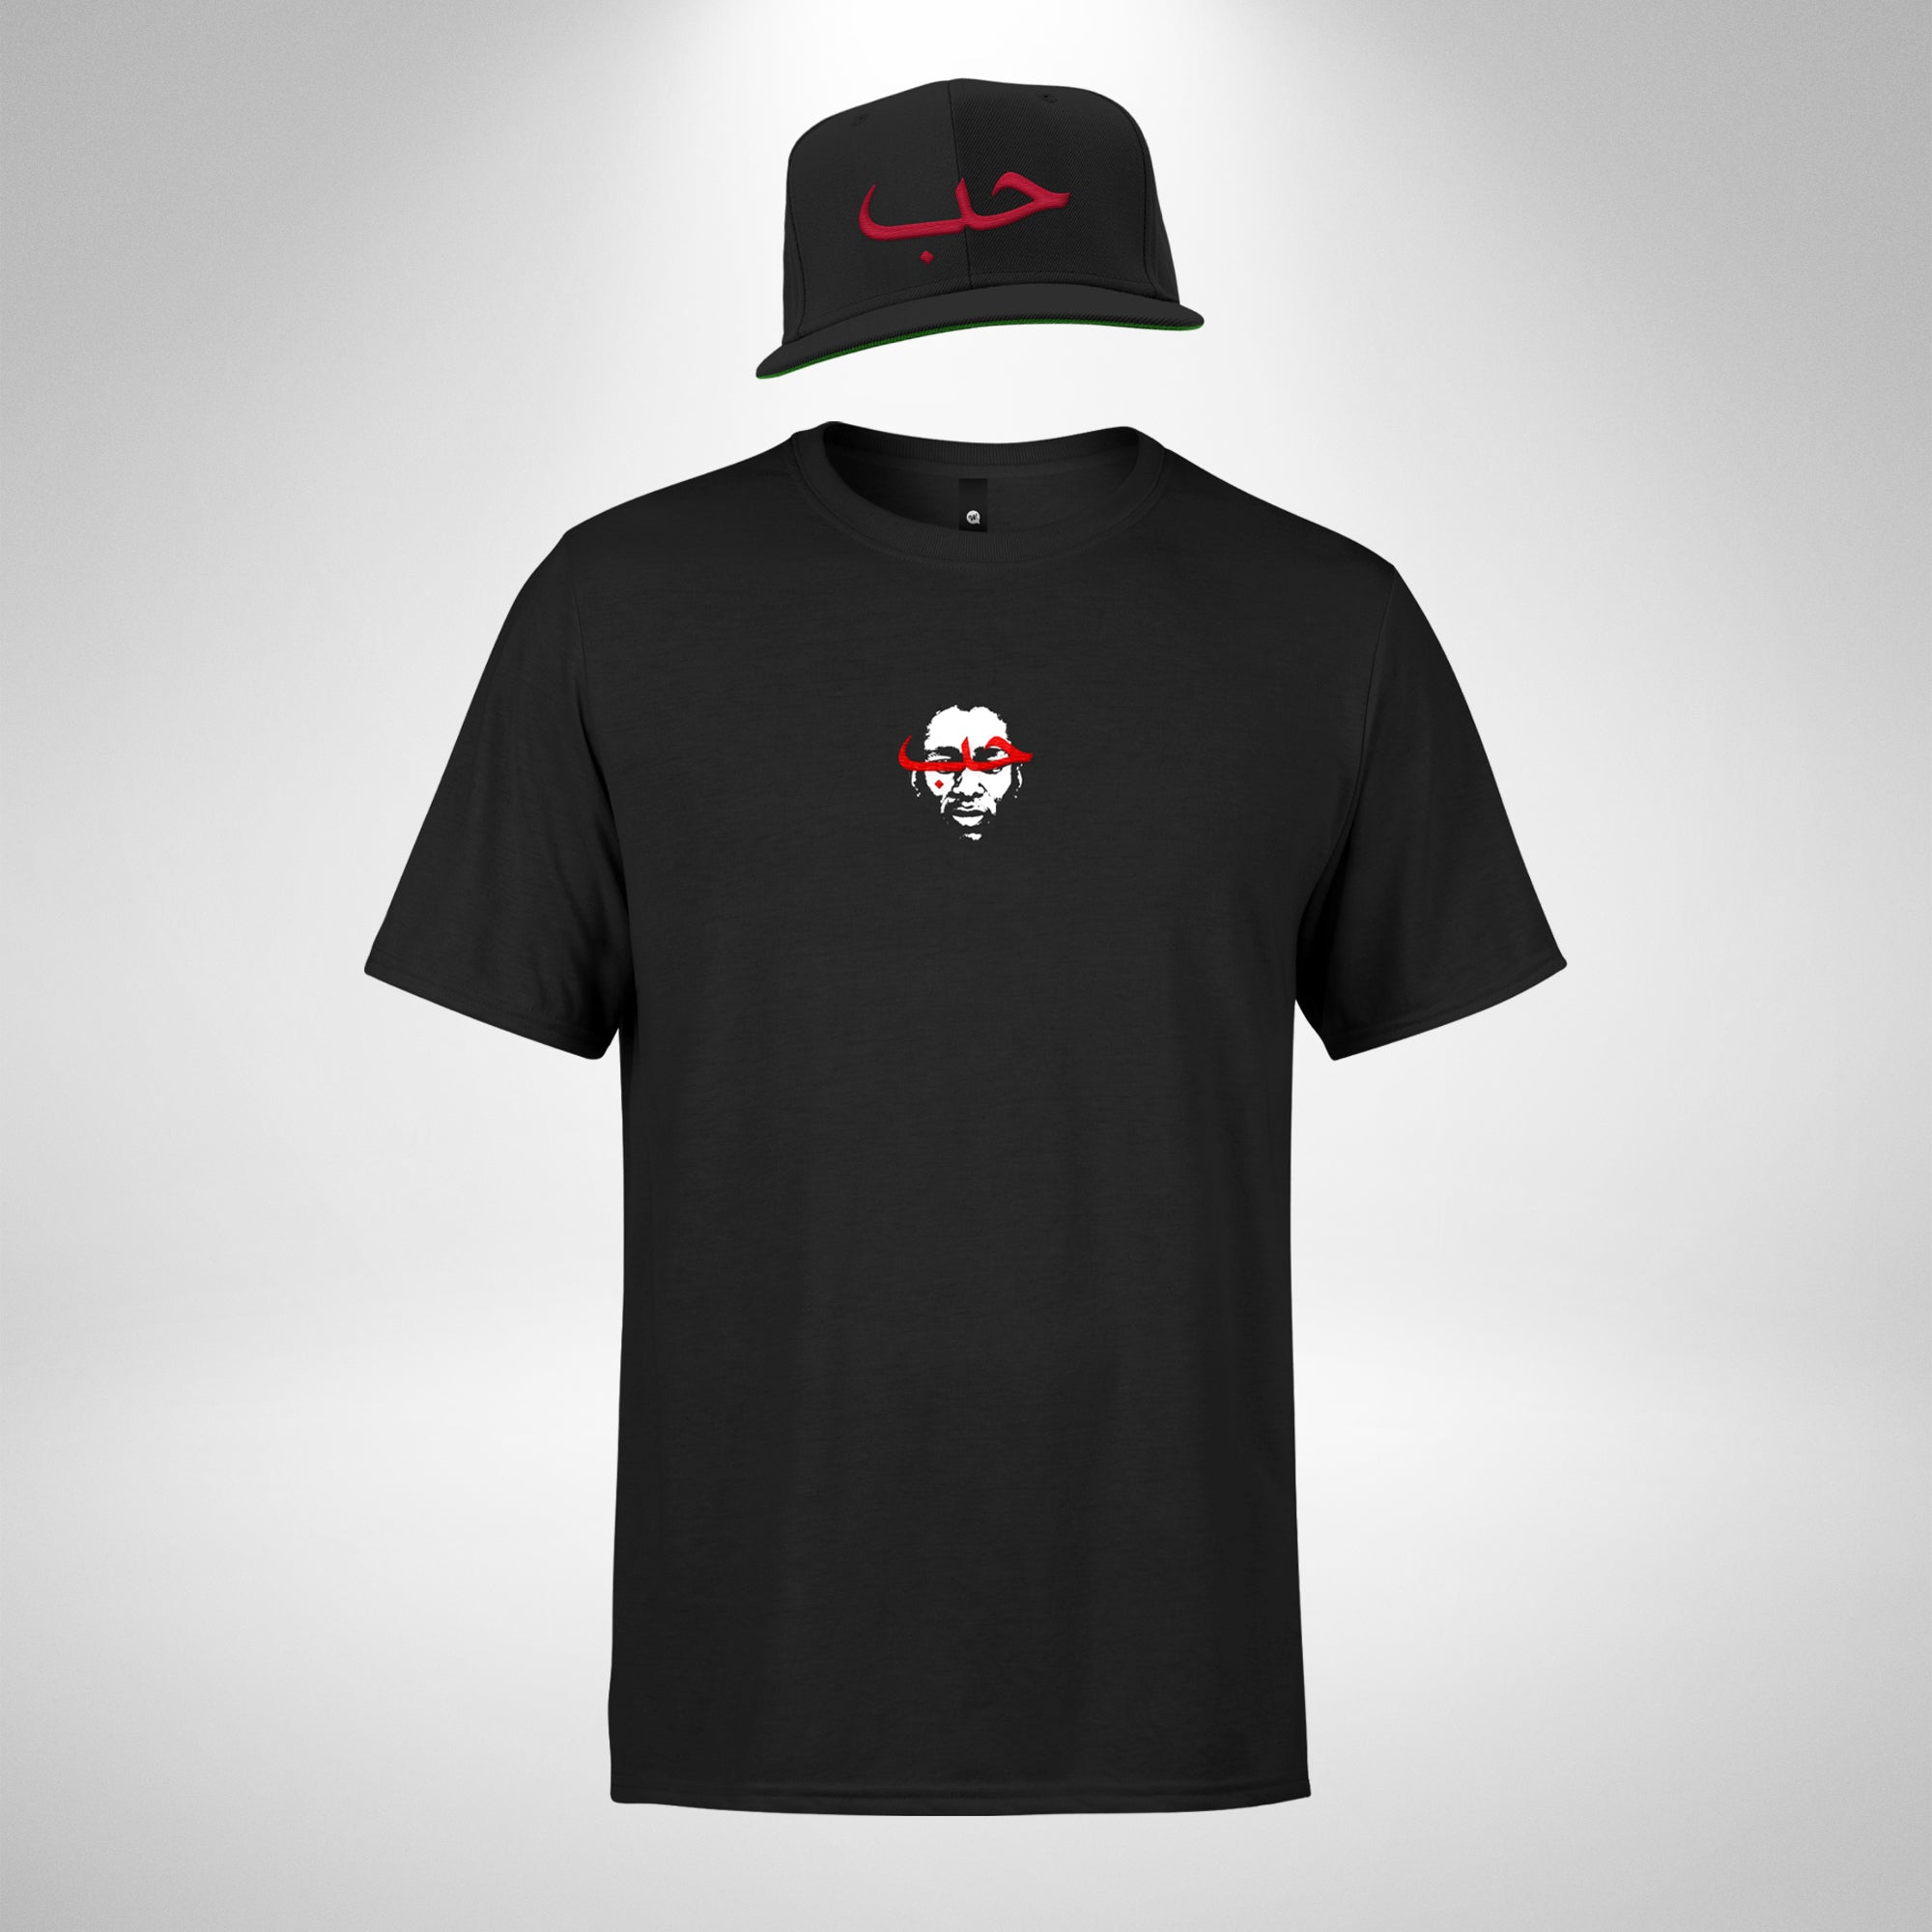 Love Tee & Snapback Cap Bundle